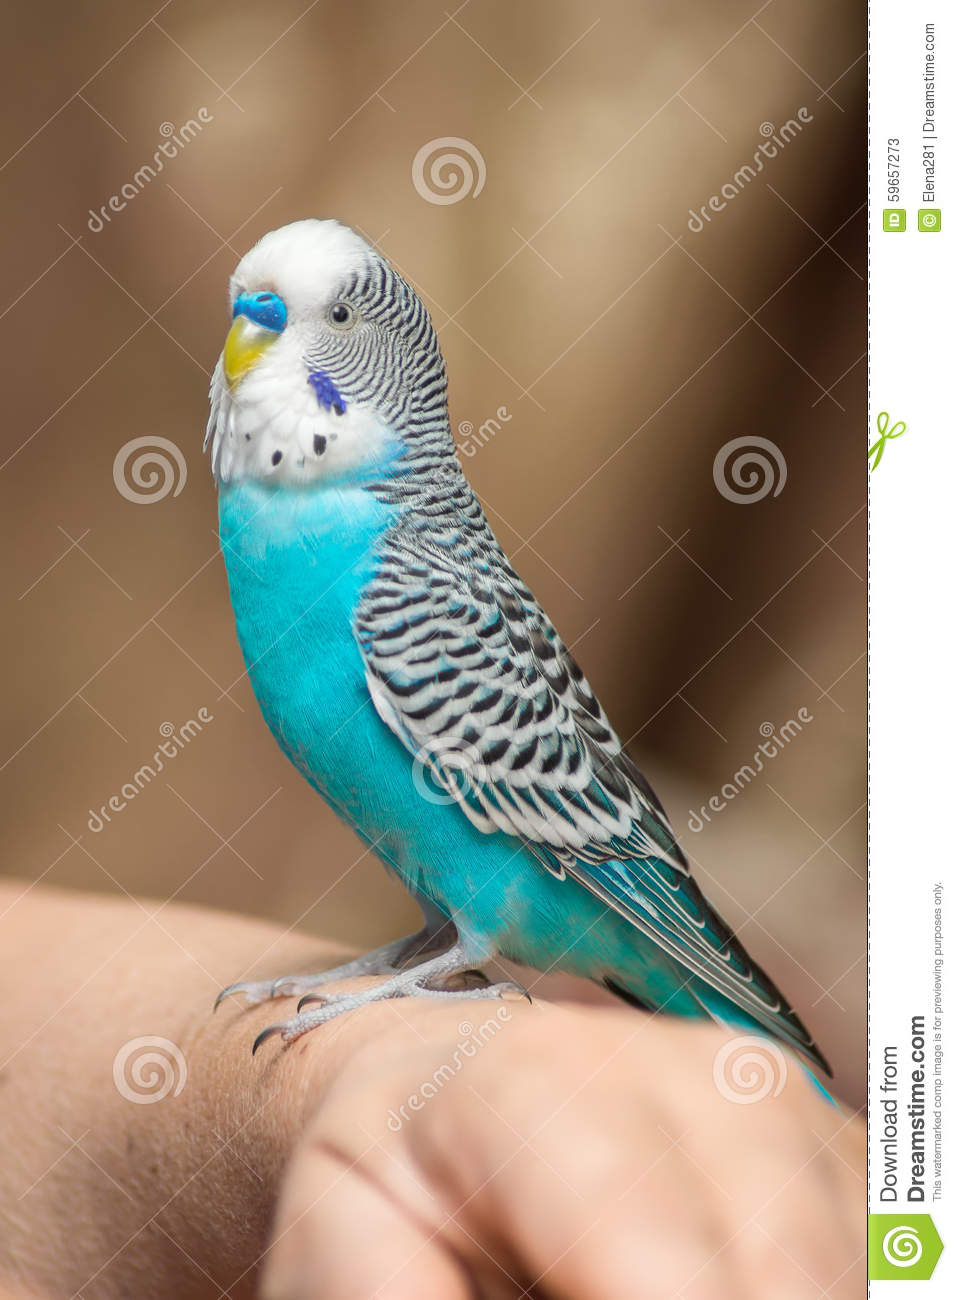 how to tell a budgie is male or female